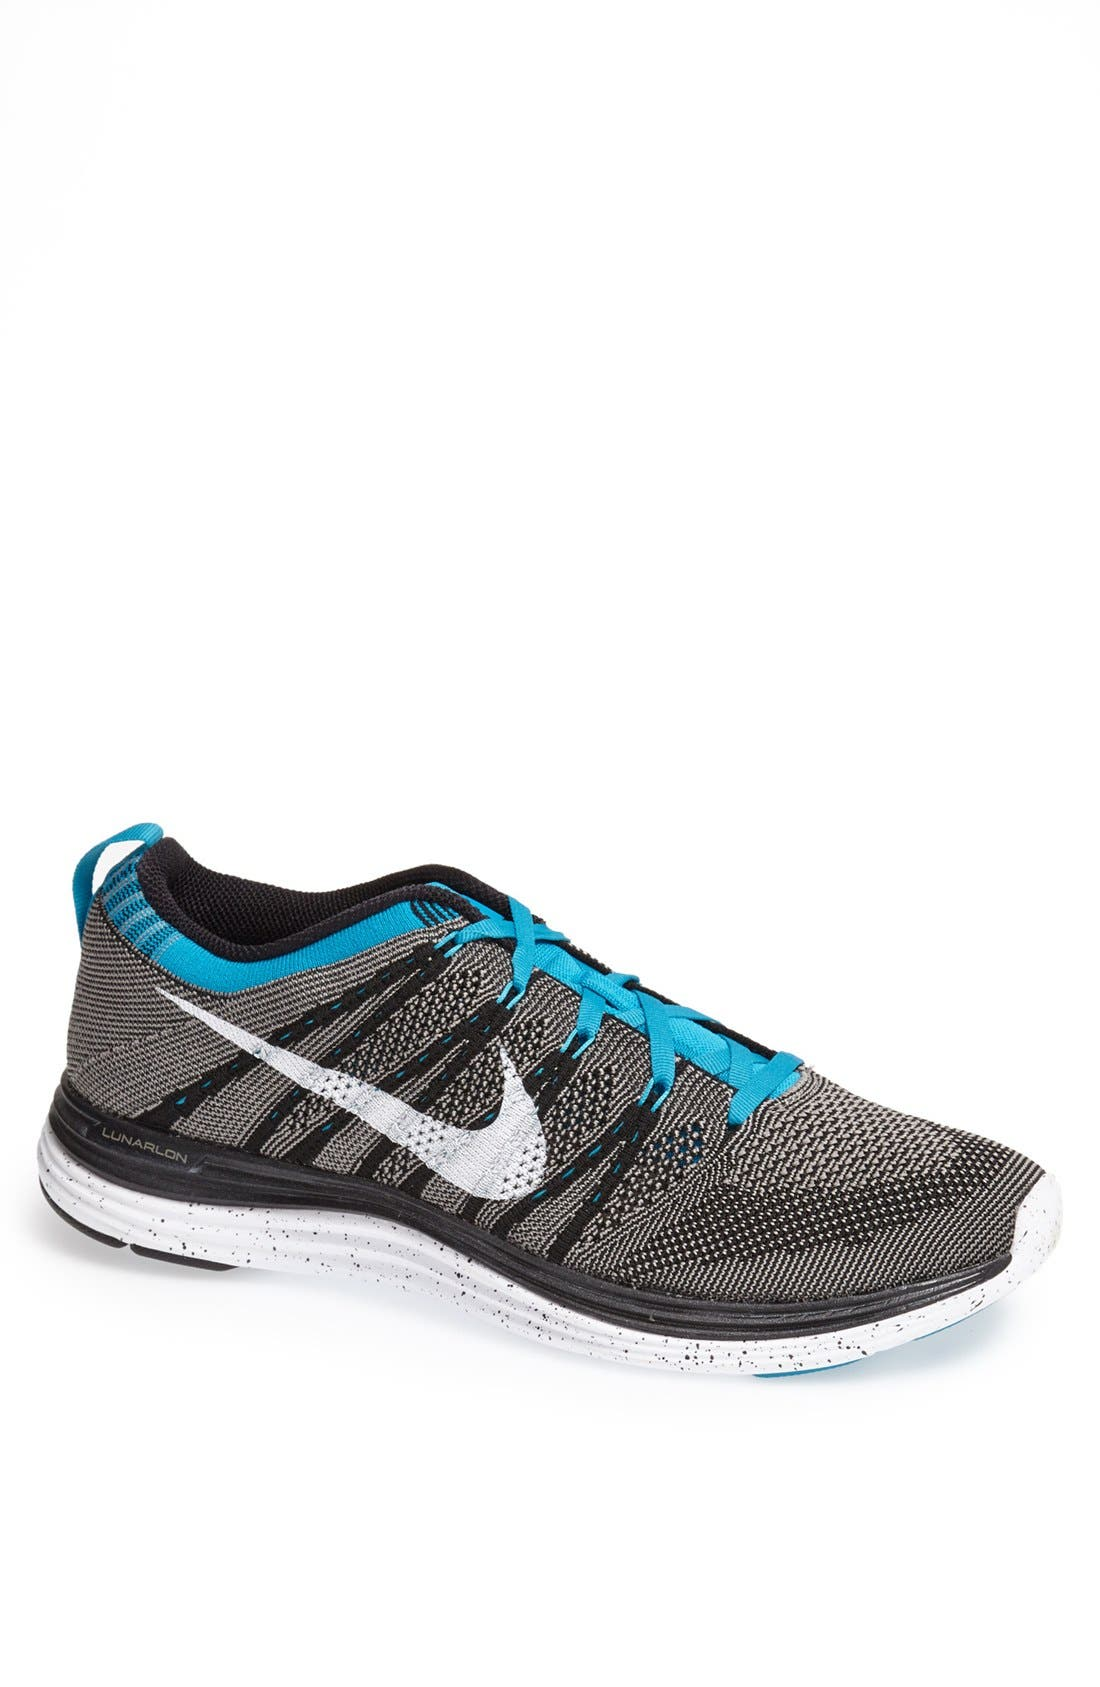 Main Image - Nike 'Flyknit Lunar1+' Running Shoe (Men)